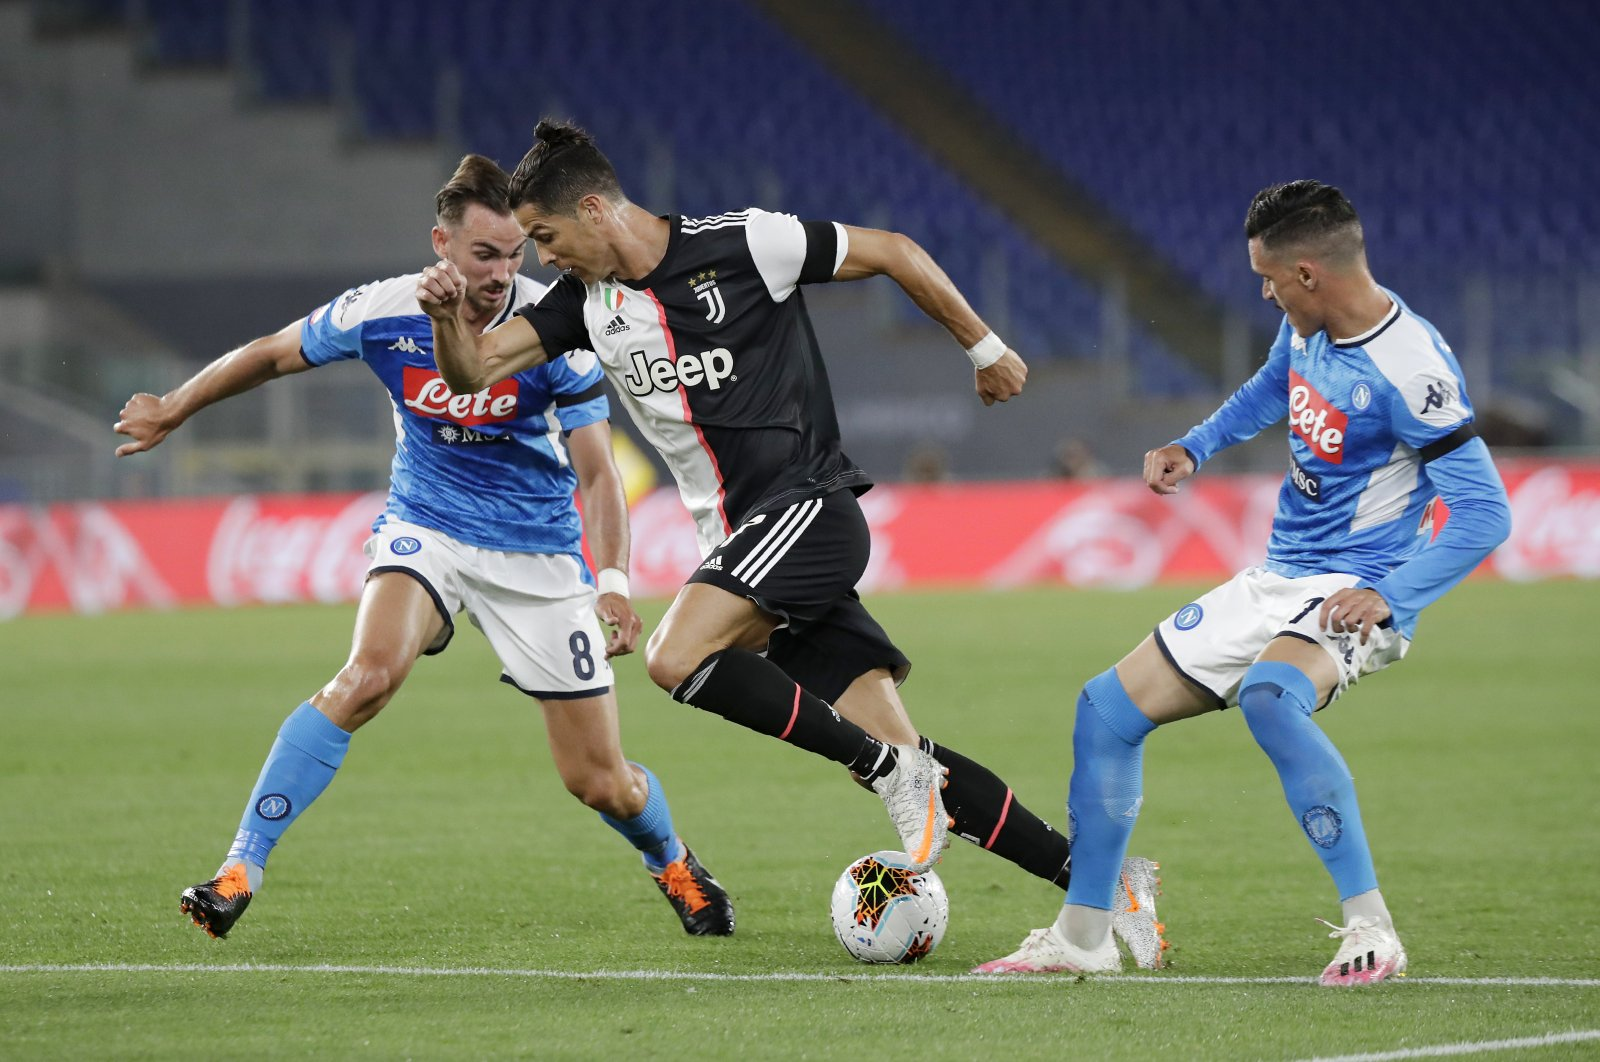 Juventus' Cristiano Ronaldo tries to dribble past Napoli players during the Italian Cup final match in Rome, Italy, June 17, 2020. (AP Photo)